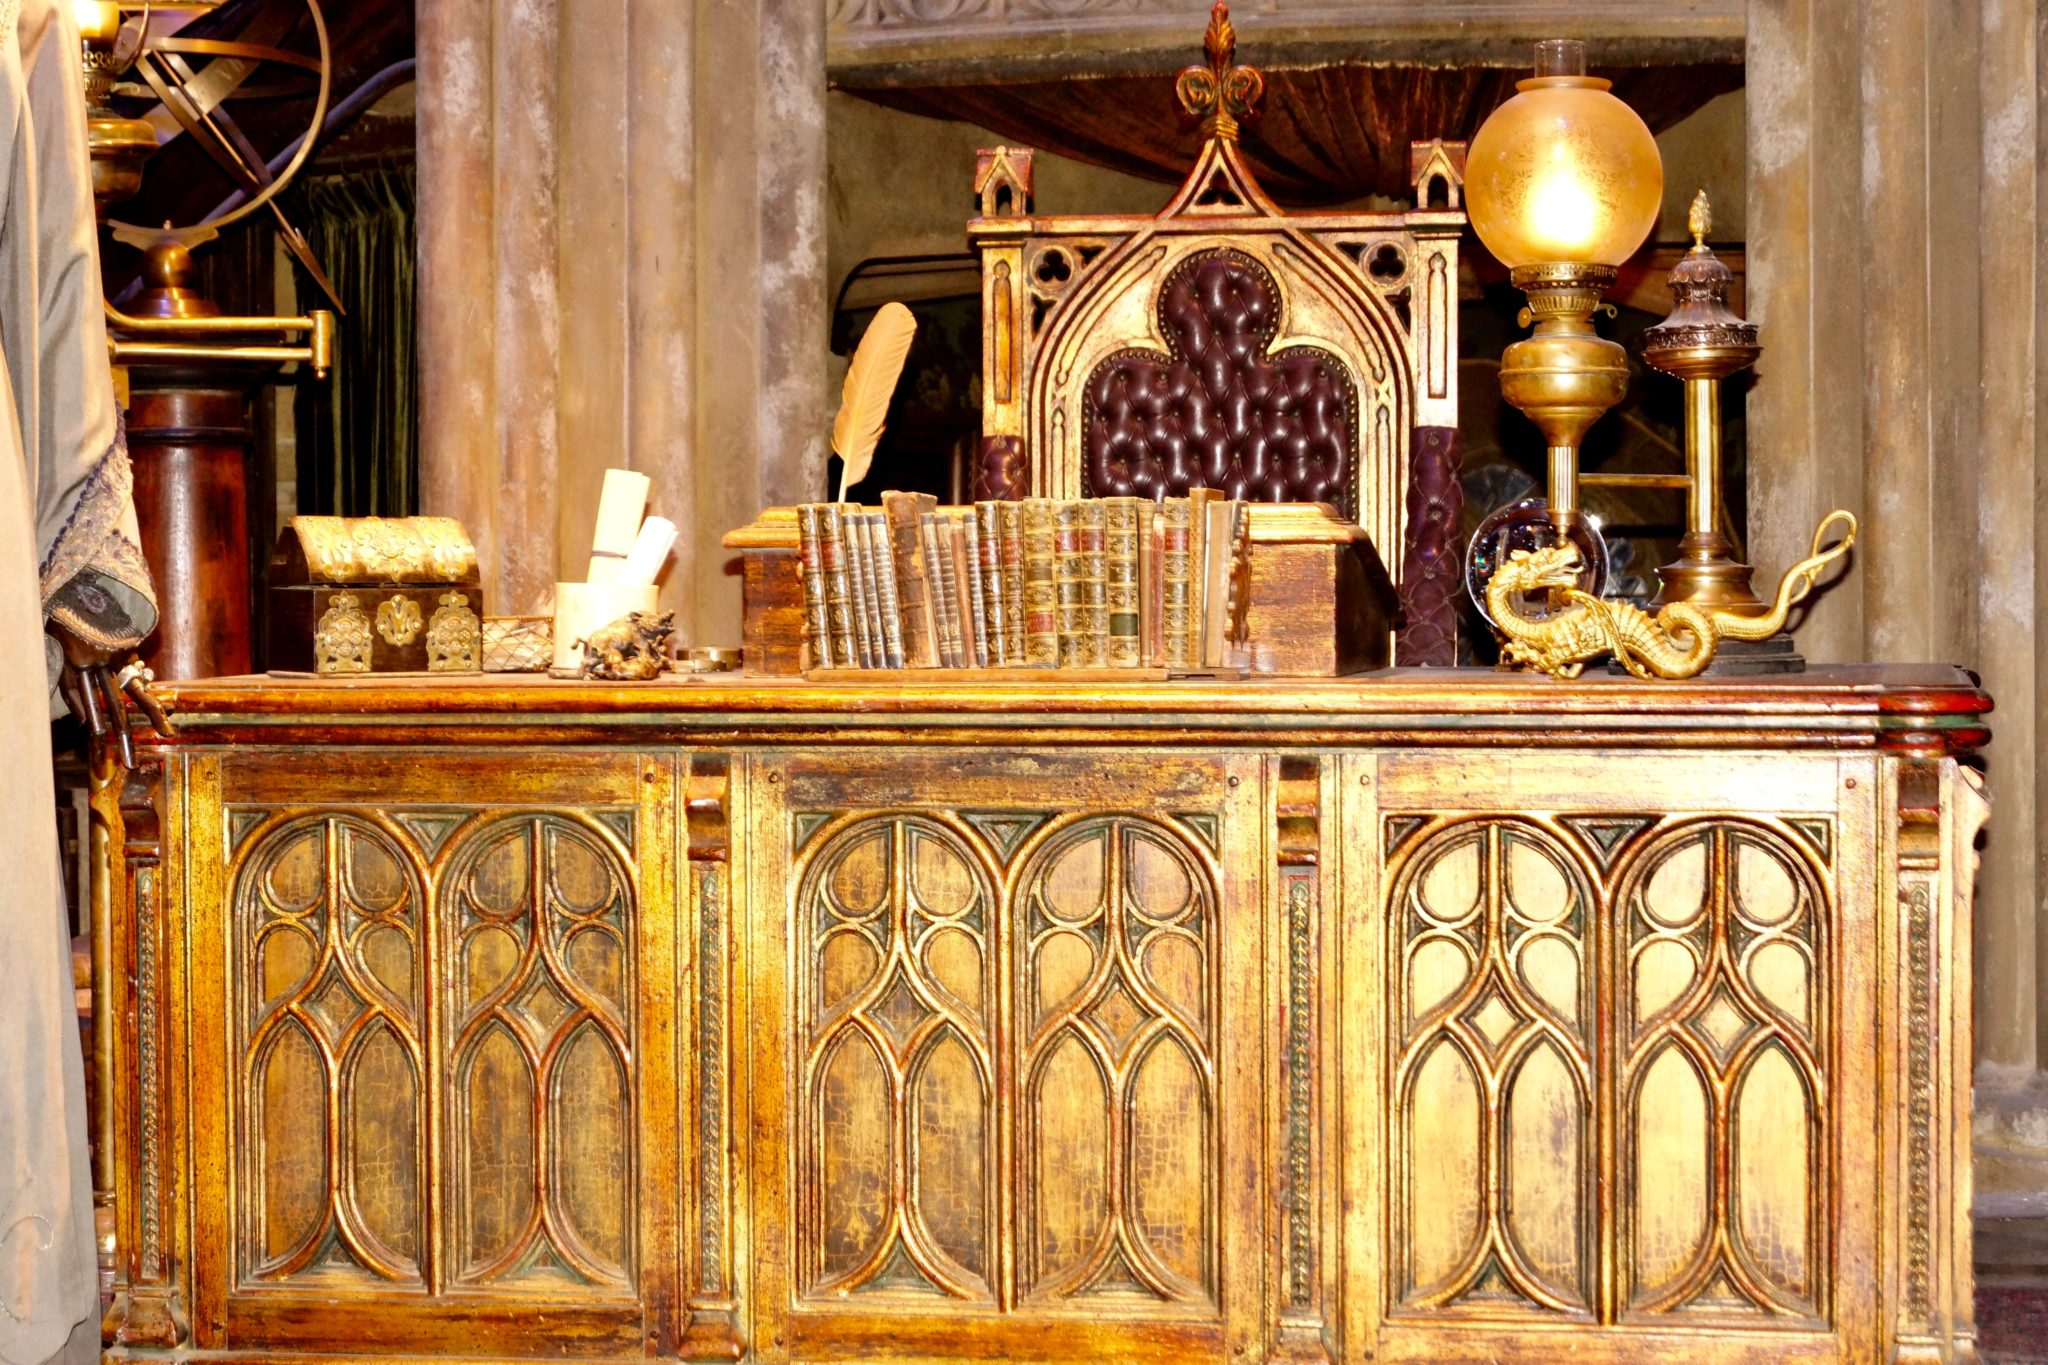 Albus Dumbledore's Office at Hogwarts